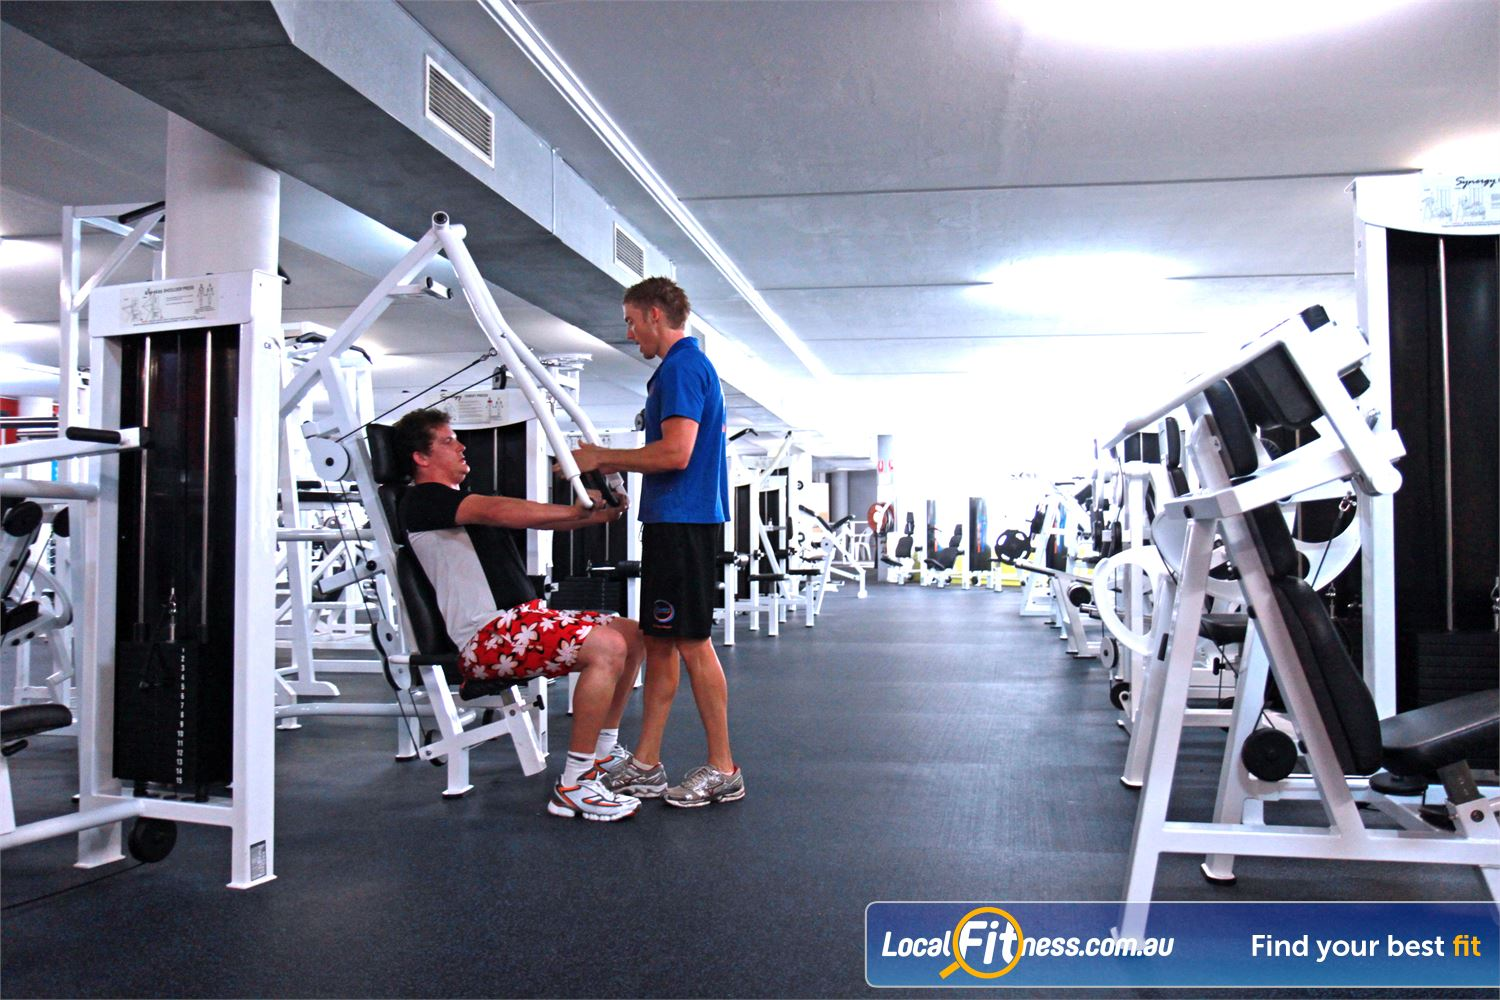 Goodlife Health Clubs Near Thornlands Alexandra Hills gym instructors can tailor a strength program to suit you.